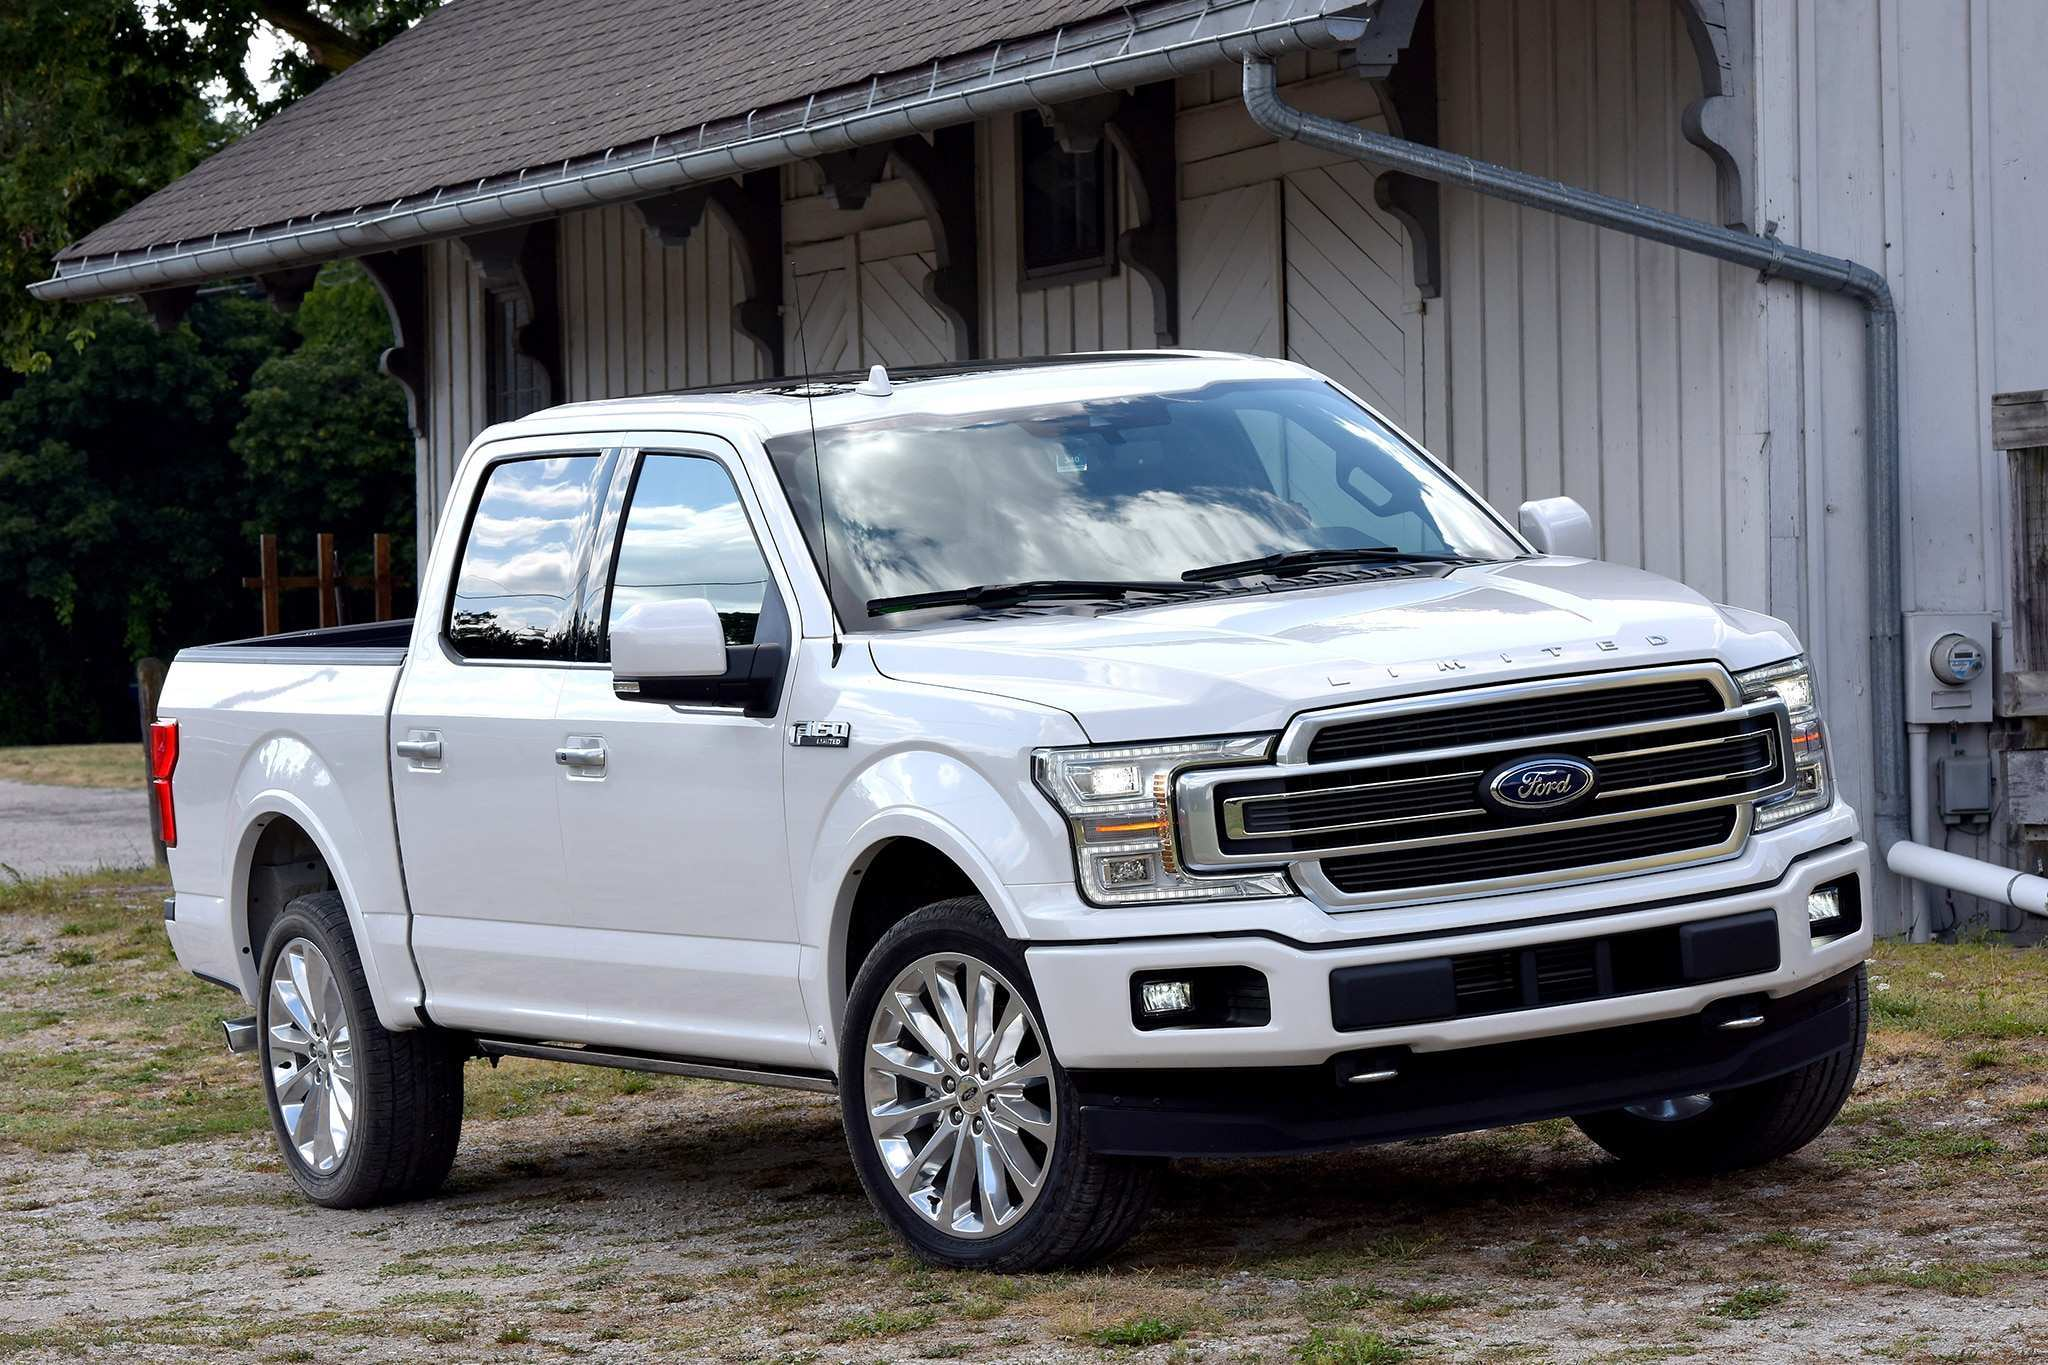 99 Great 2019 Ford 150 Lariat Ratings by 2019 Ford 150 Lariat